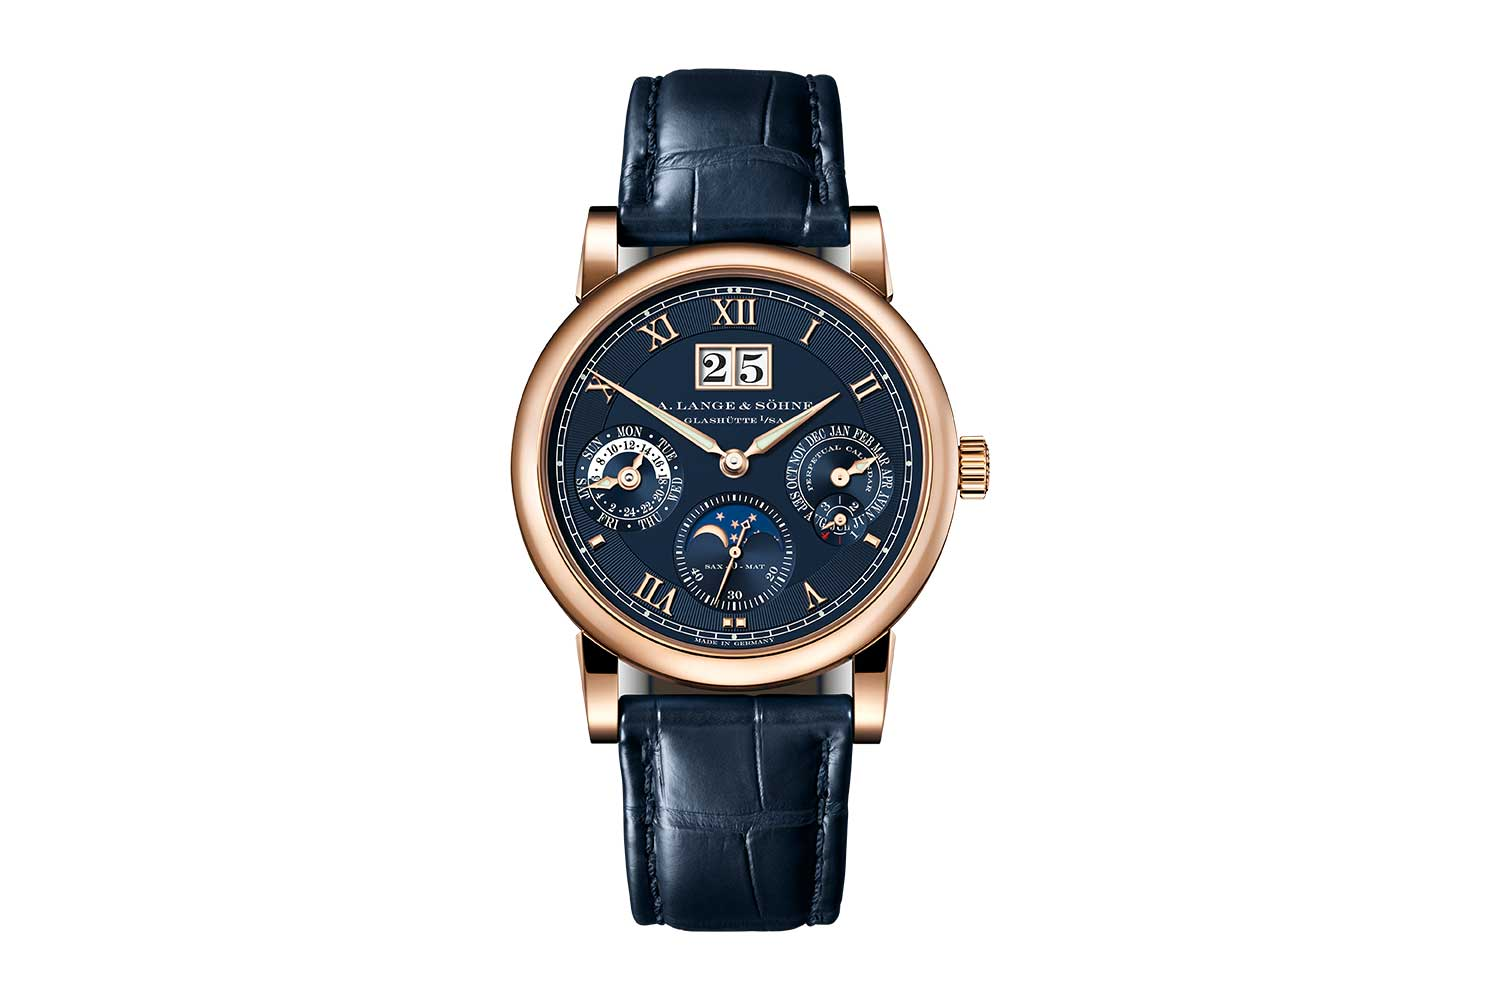 The 2021 Langematik Perpetual in pink gold with blue dial – ref. 310.037, limited to 50 pieces